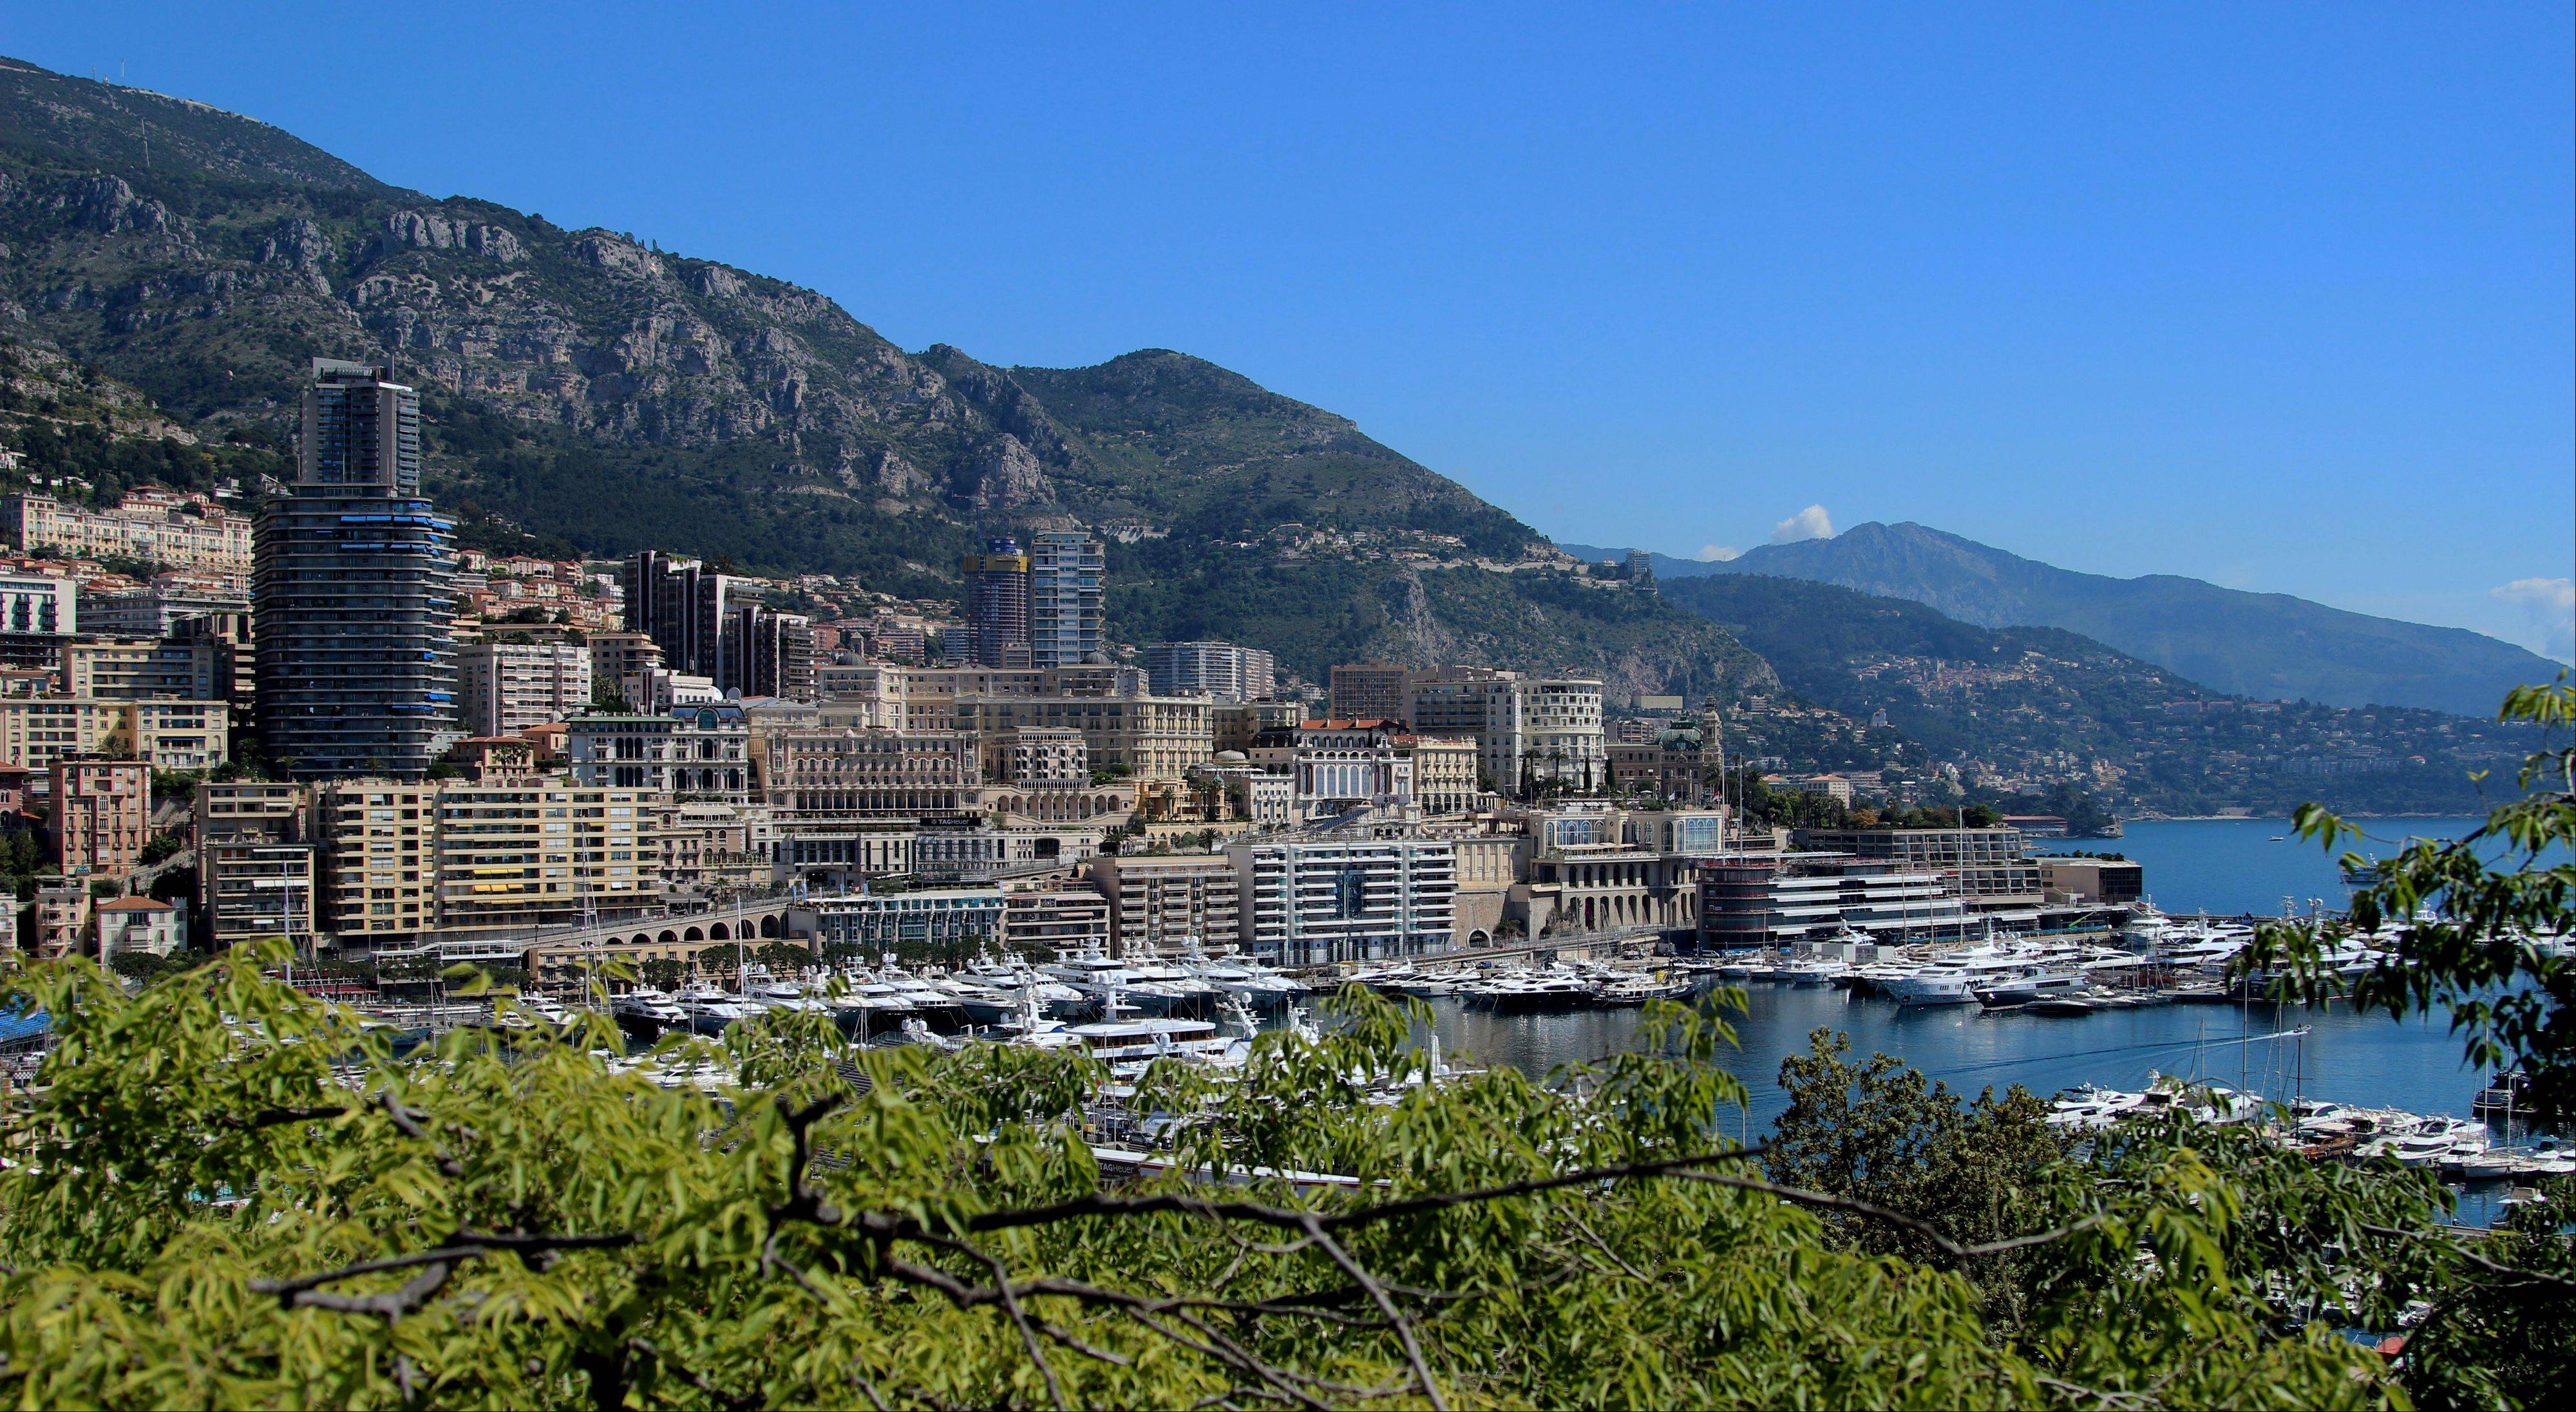 Monaco is set on a narrow strip of land bordered by France on three sides and the Mediterranean on the other. Monaco can be reached via three scenic roads, the Basse Corniche, the Moyenne Corniche or the Grande Corniche.